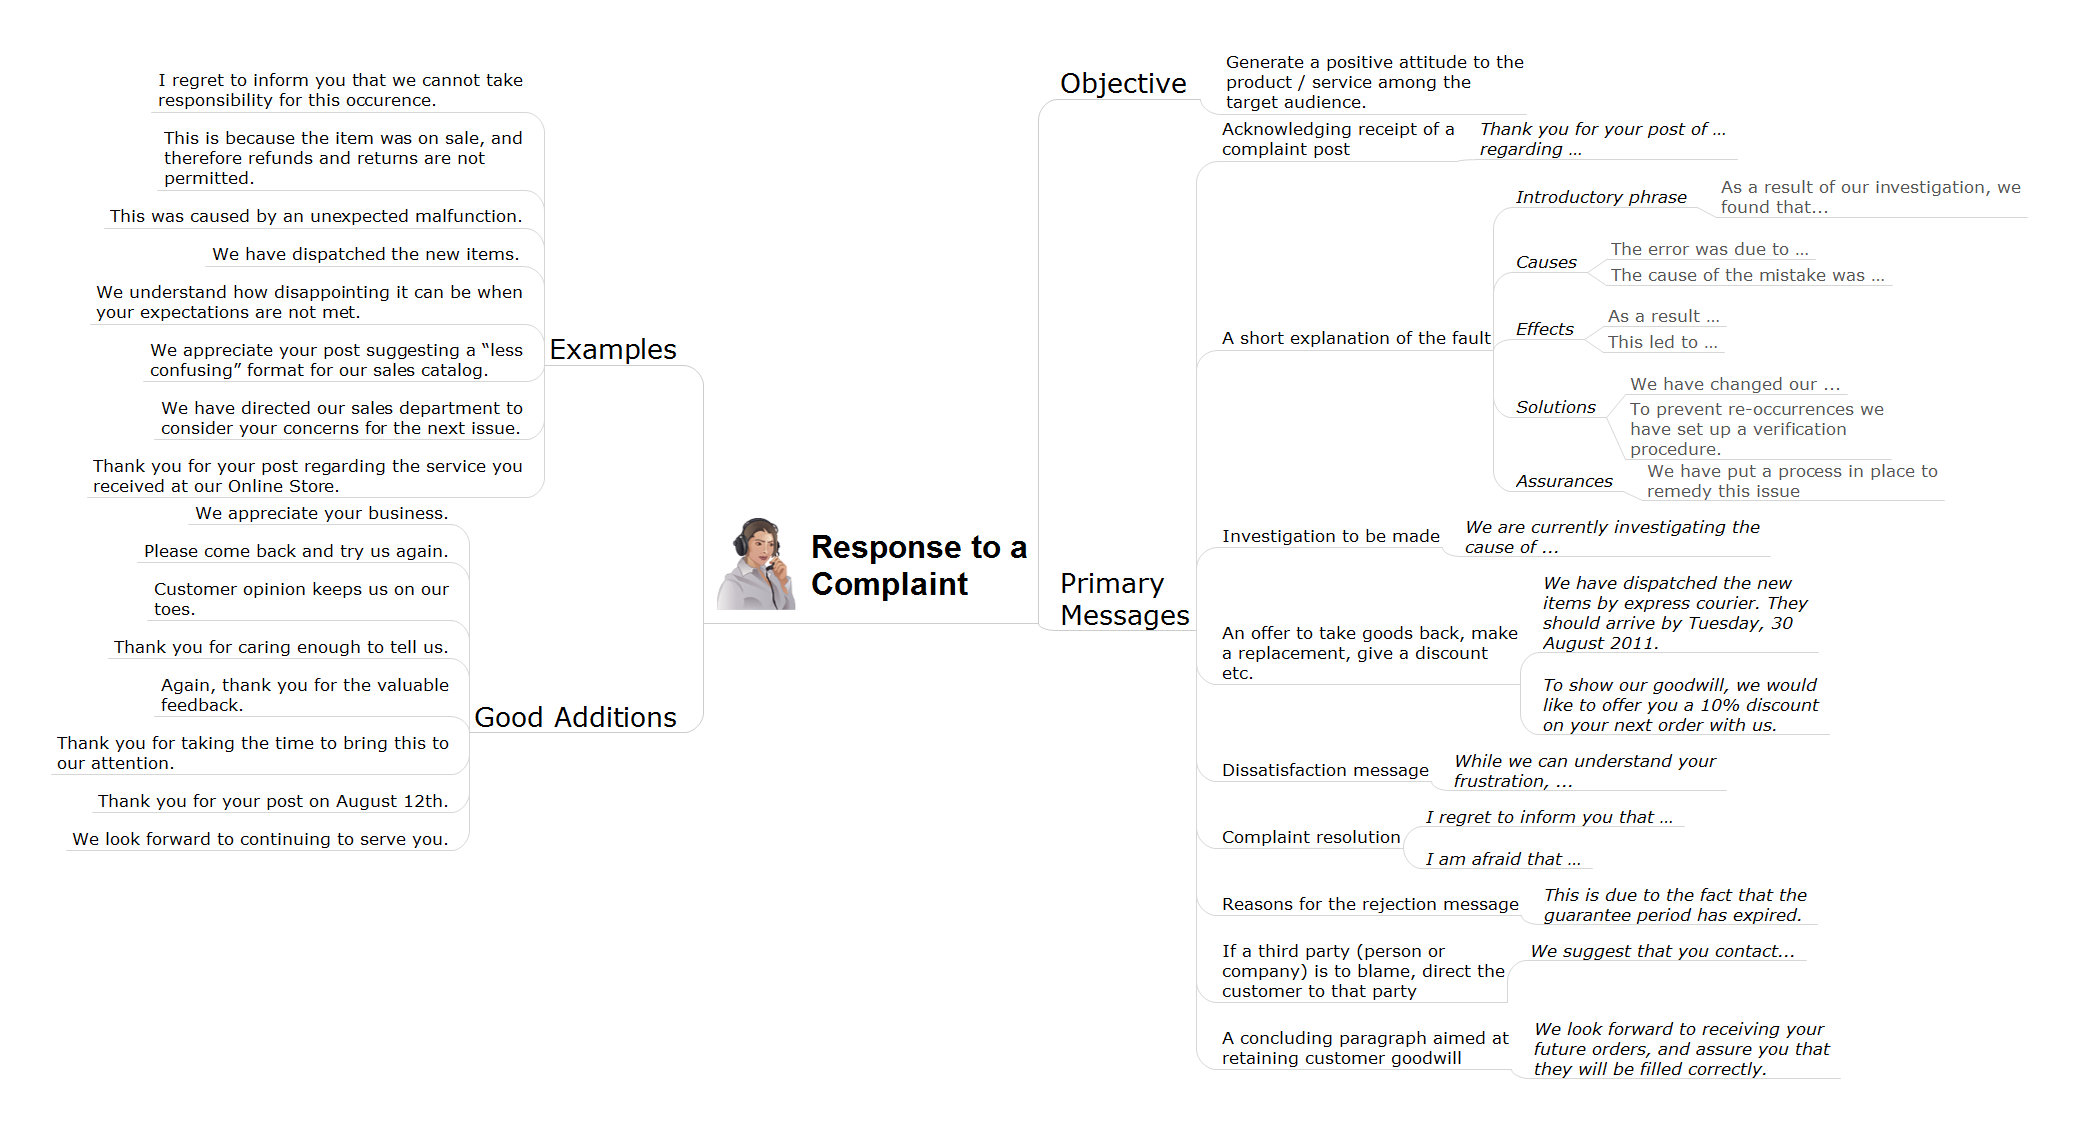 Social media response action mindmap - Response to complaint